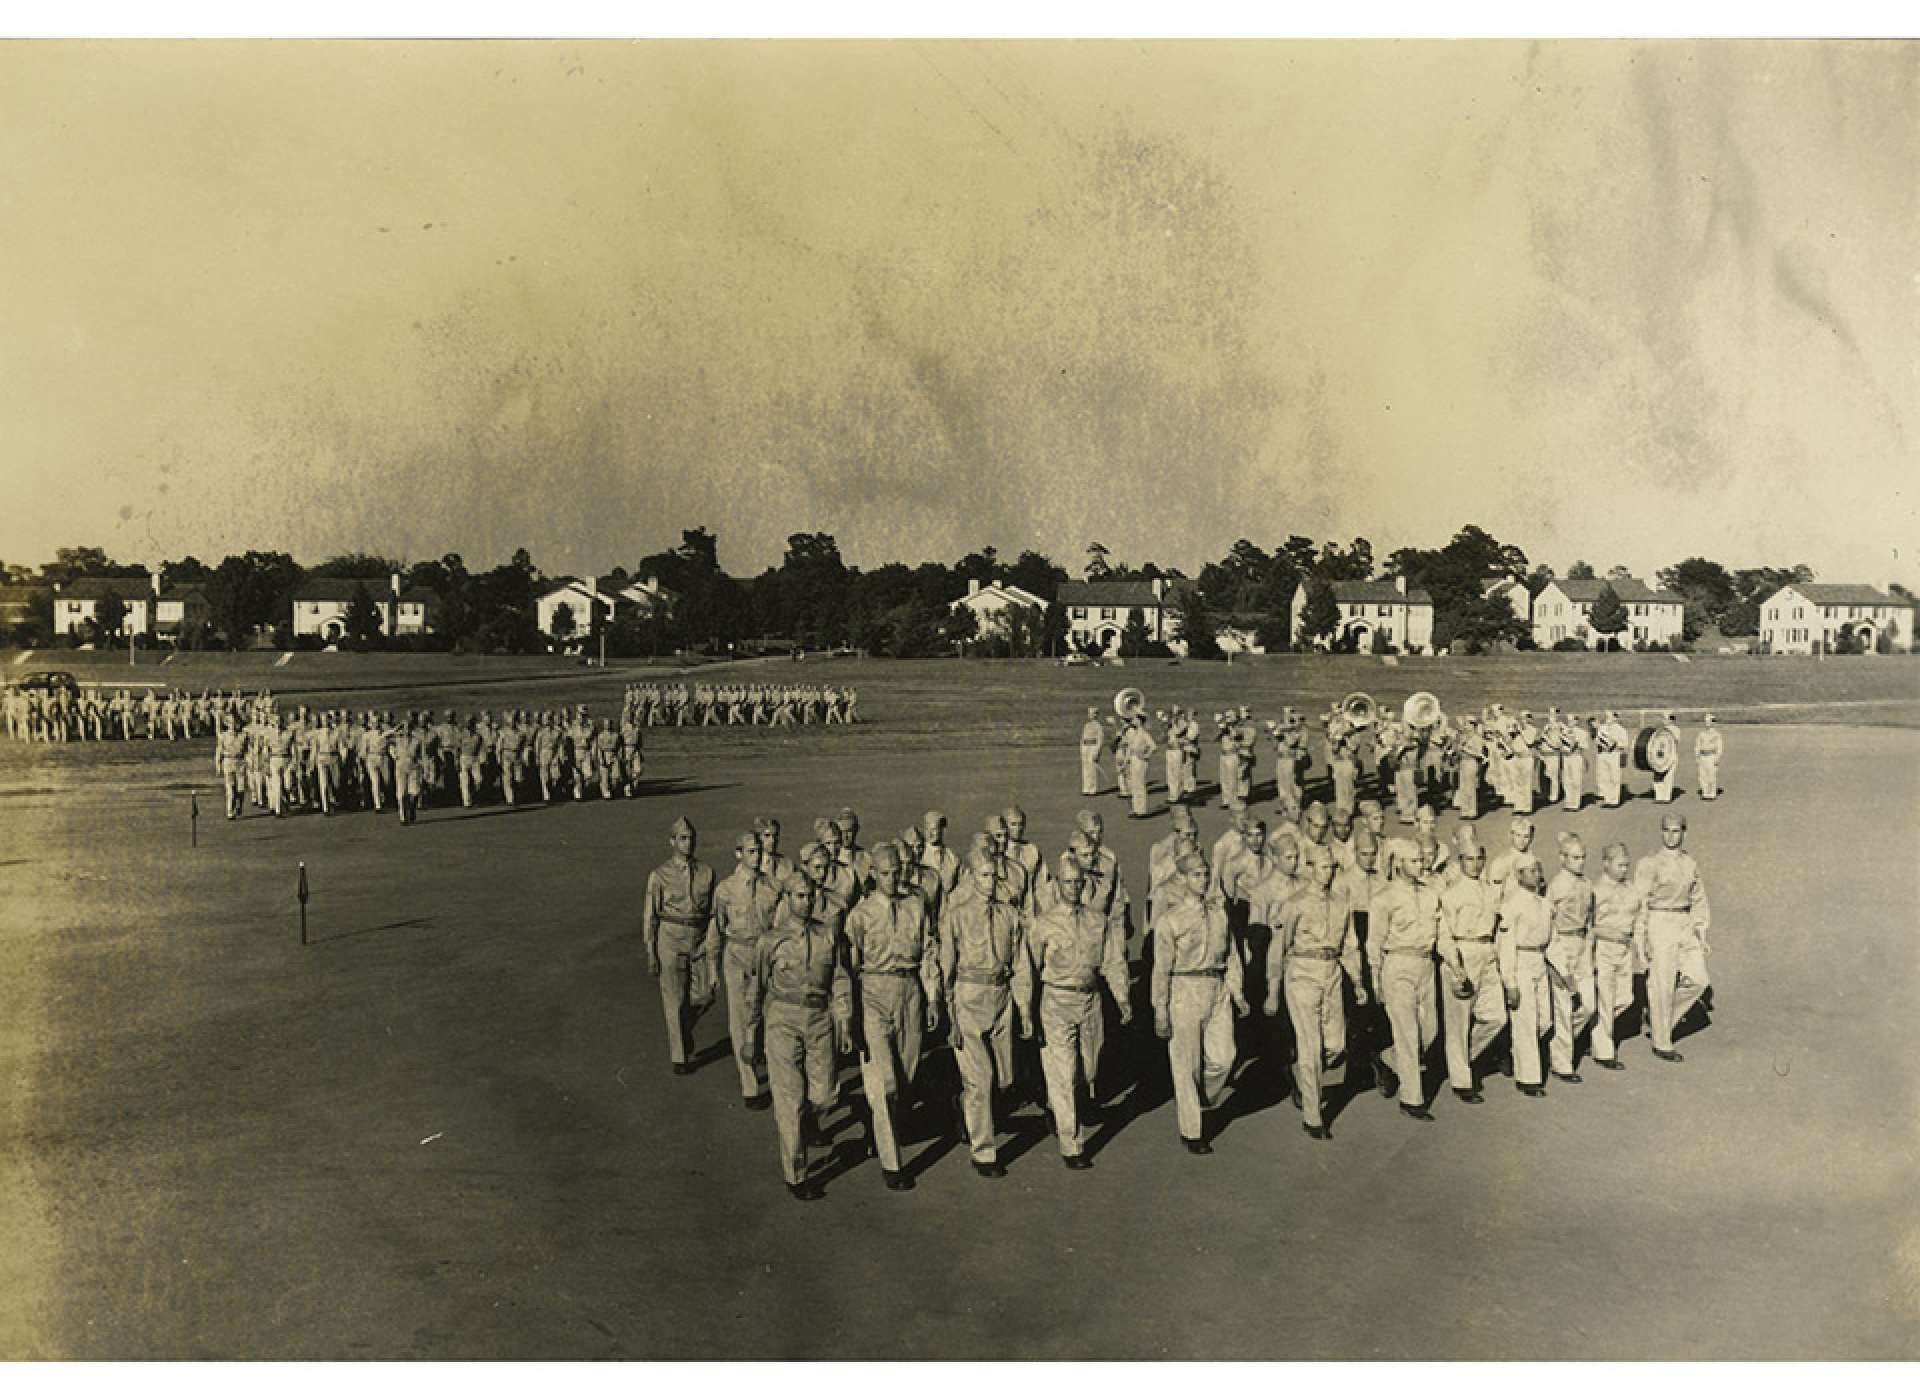 Although they would not be going into battle, the men of the 24th General Hospital underwent military training at Fort Benning, Georgia, in 1942-1943 to prepare to deploy. The National WWII Museum